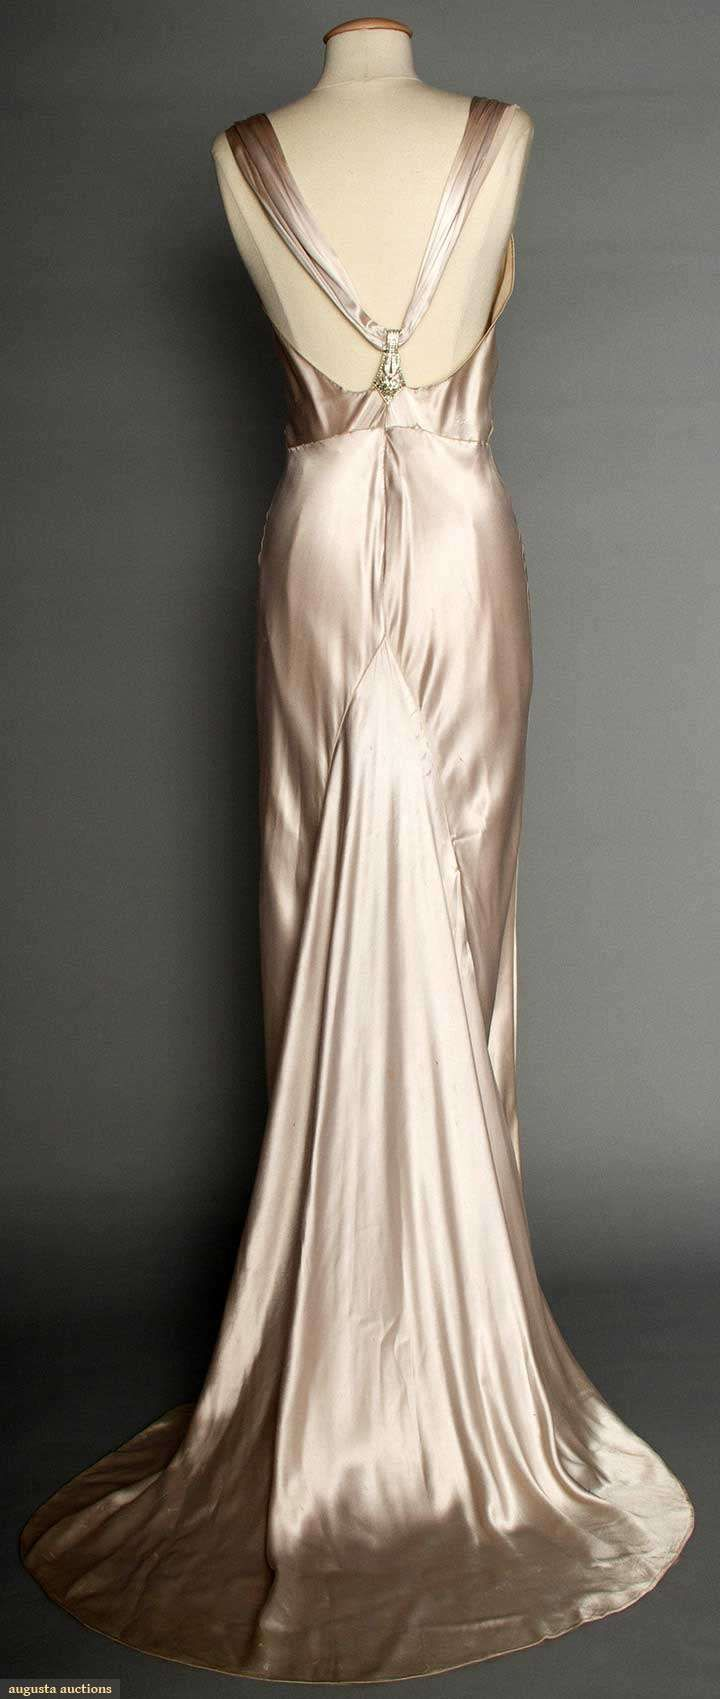 30s silk charmeuse, bias-cut, sleeveless, cowl neckline, open back, jewel Deco…